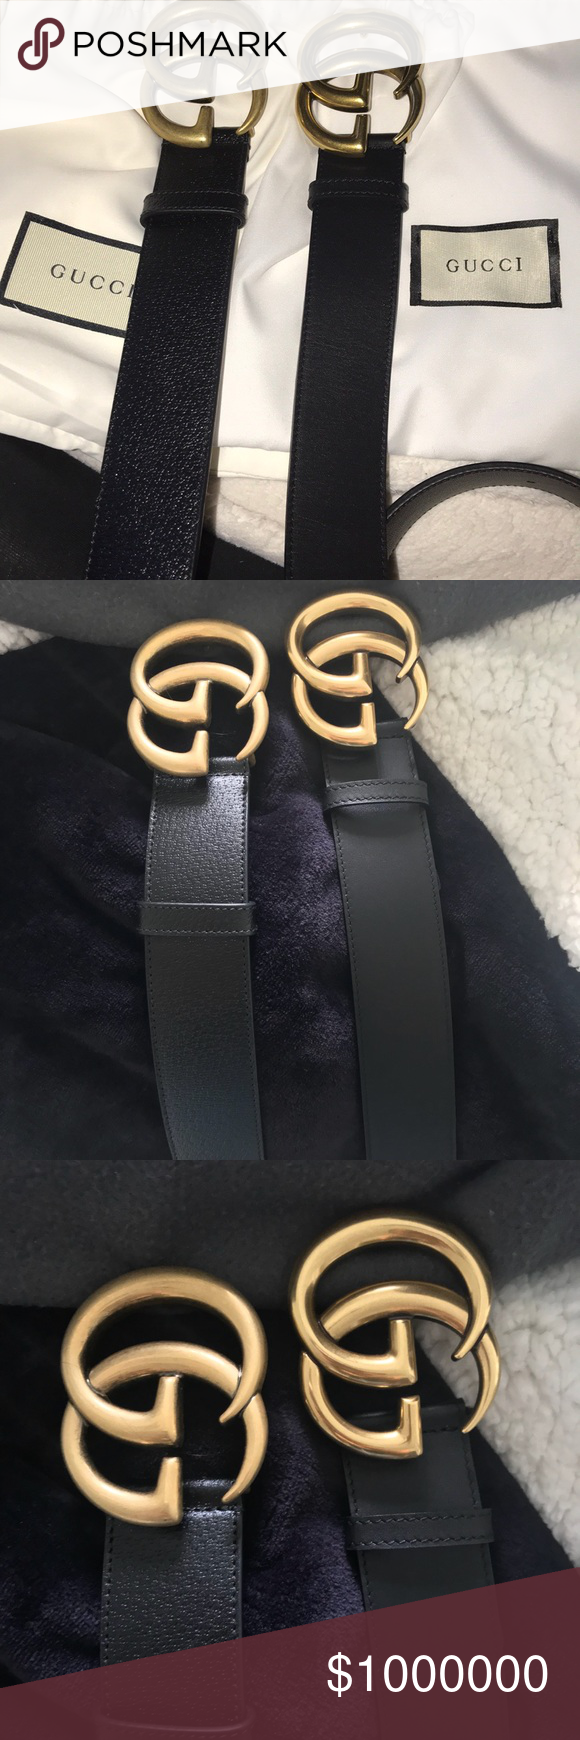 GUCCI BELT HOW TO TELL IF ITS REAL So I just wanted to show